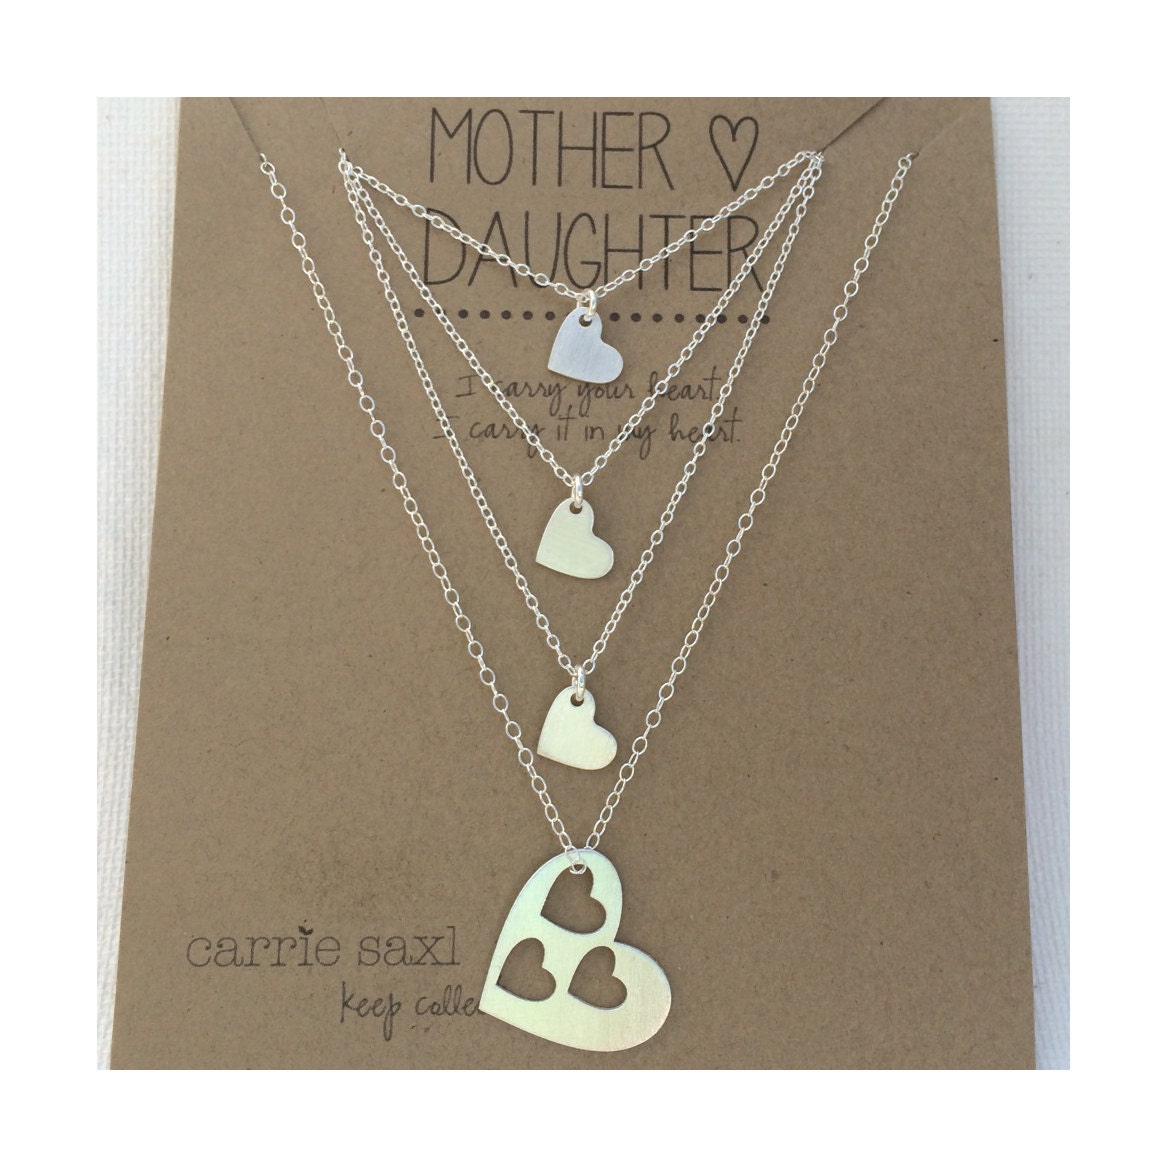 Mother daughter necklace set mother 3 daughters silver zoom aloadofball Gallery